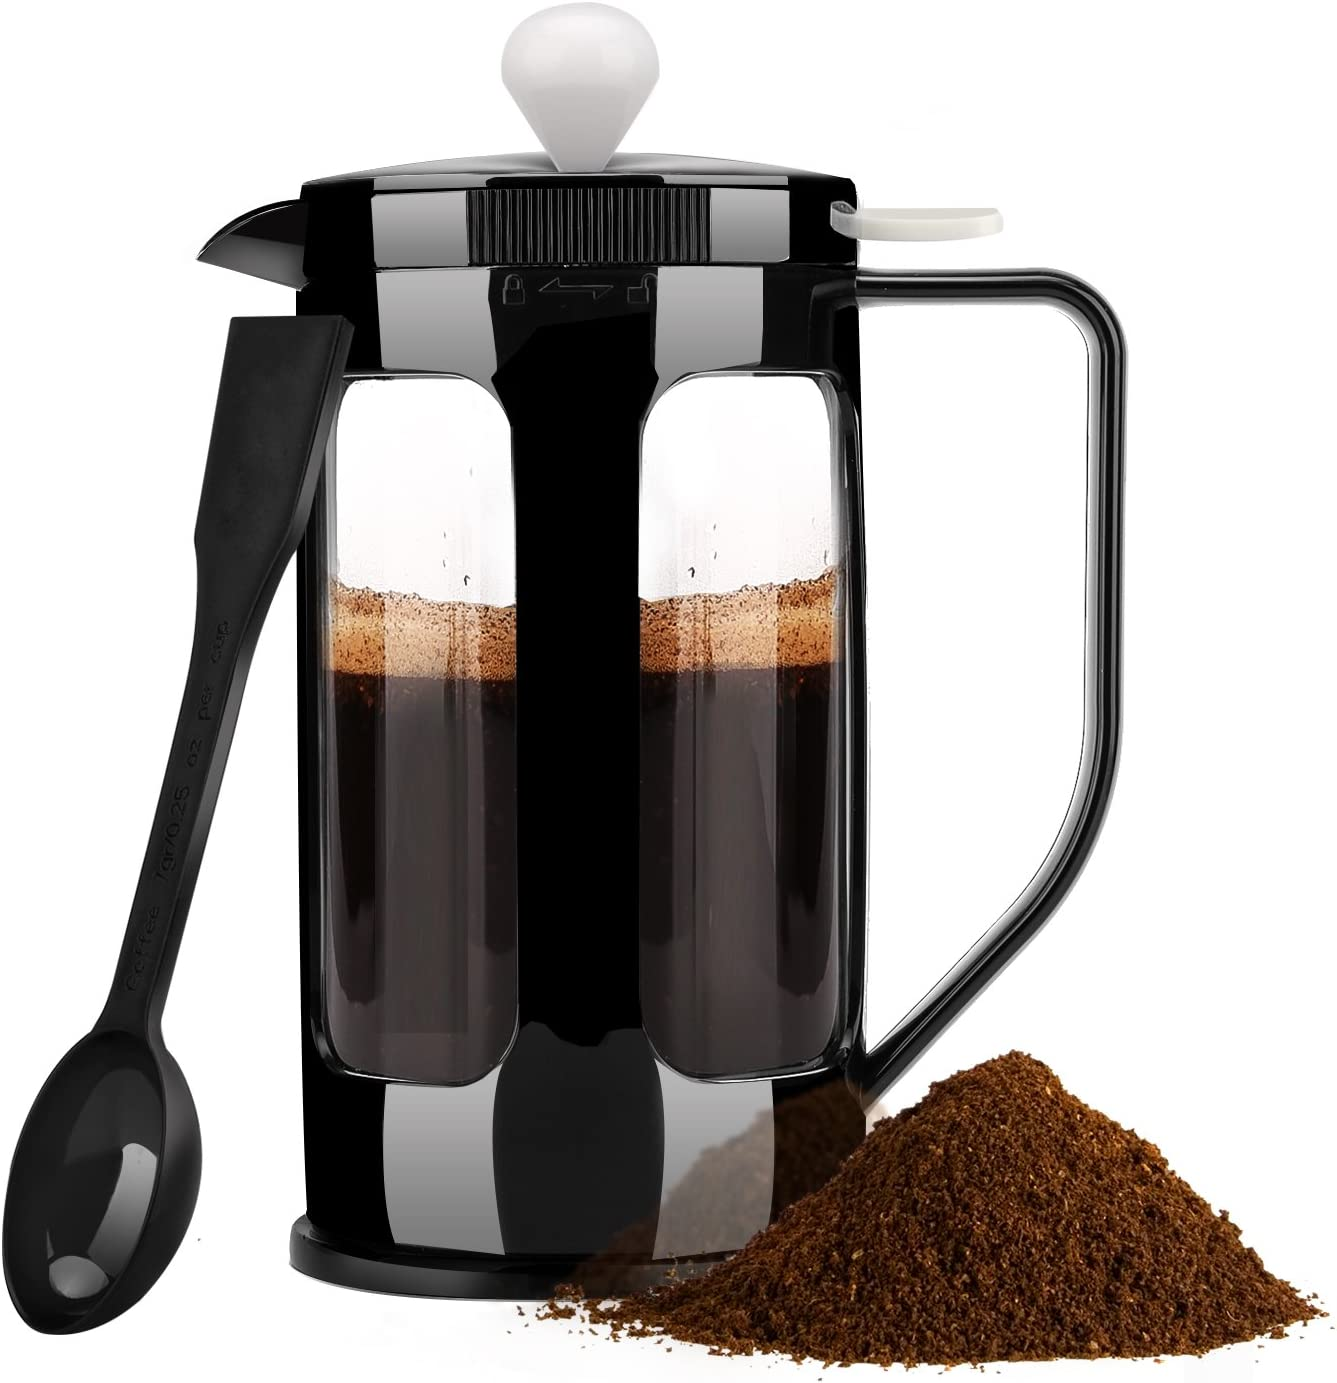 Nuovoware French Press, Coffee Maker Tea Maker Filter Brew Tea with Heat Resistant Borosilicate Glass Carafe and Stainless Steel Filter 8 Cup 34 oz – Black